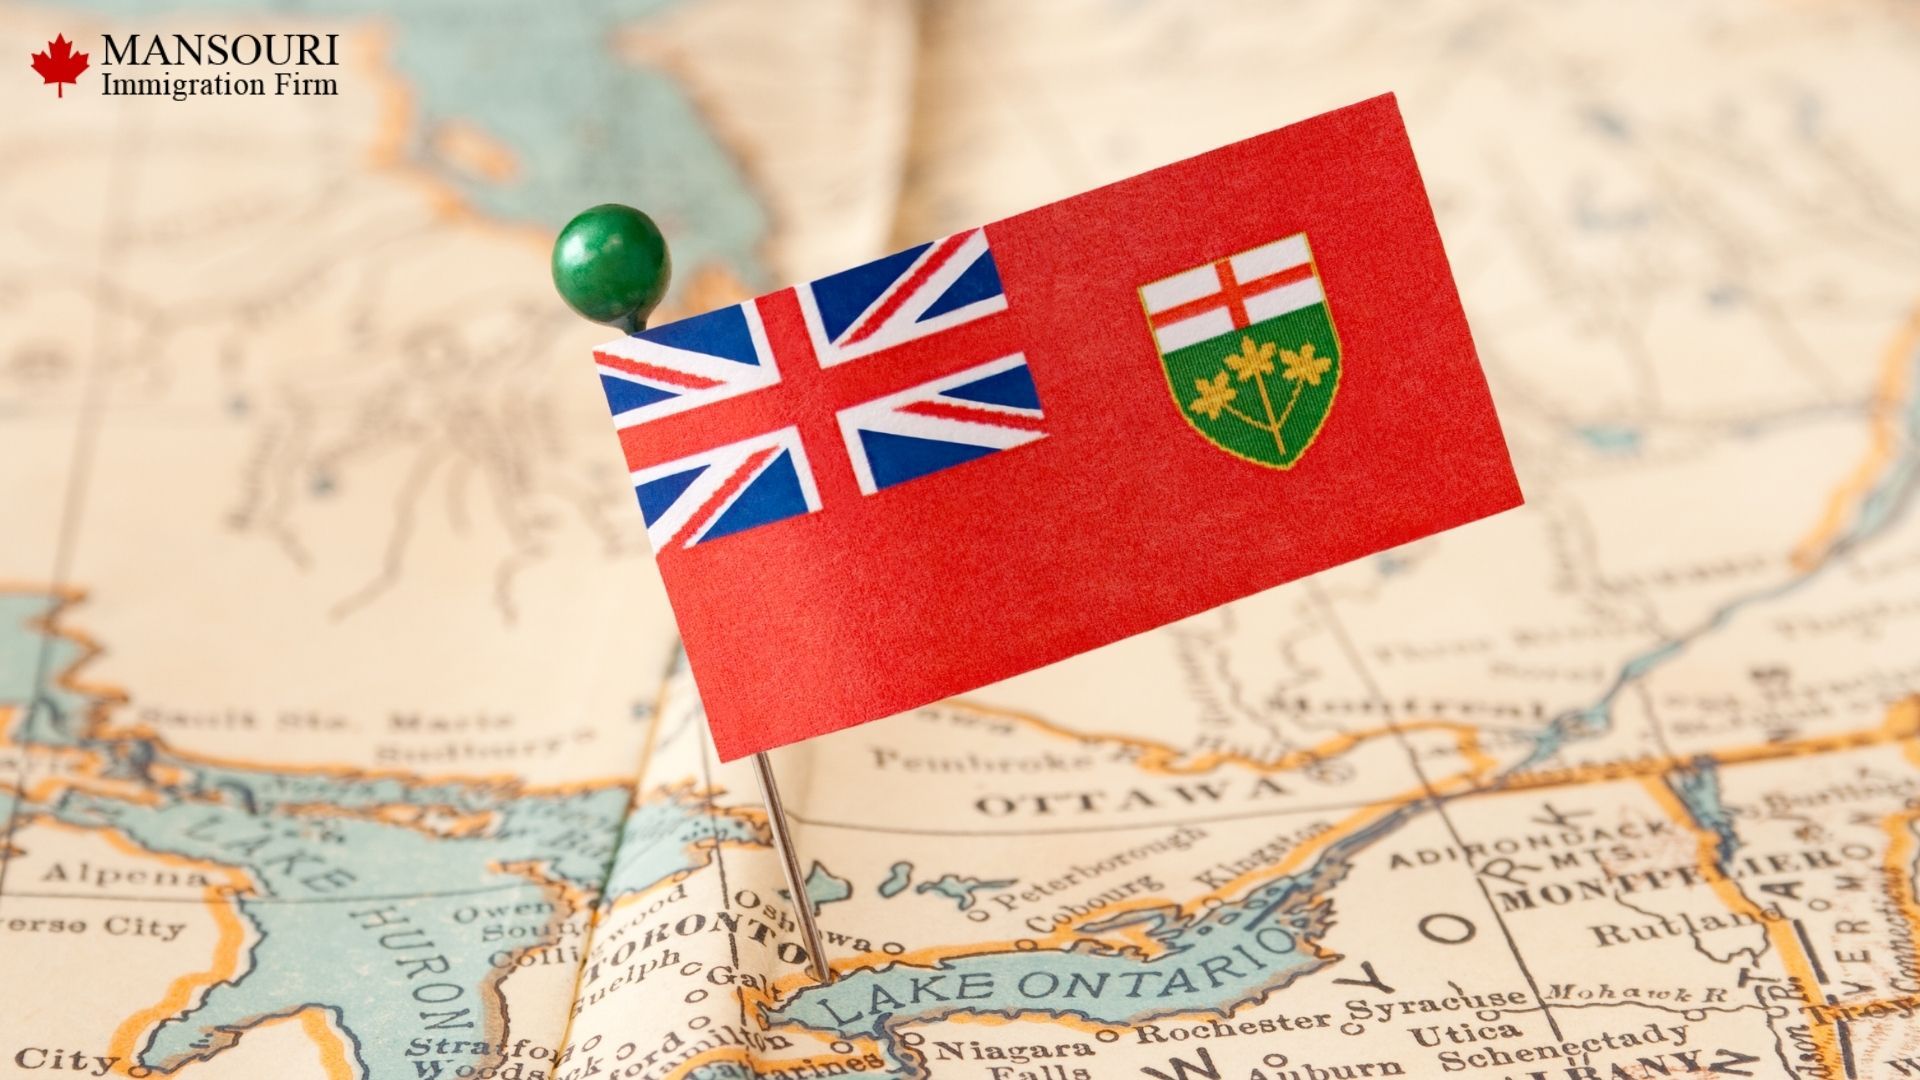 Ontario may lift language and license requirements for in-Canada immigrants